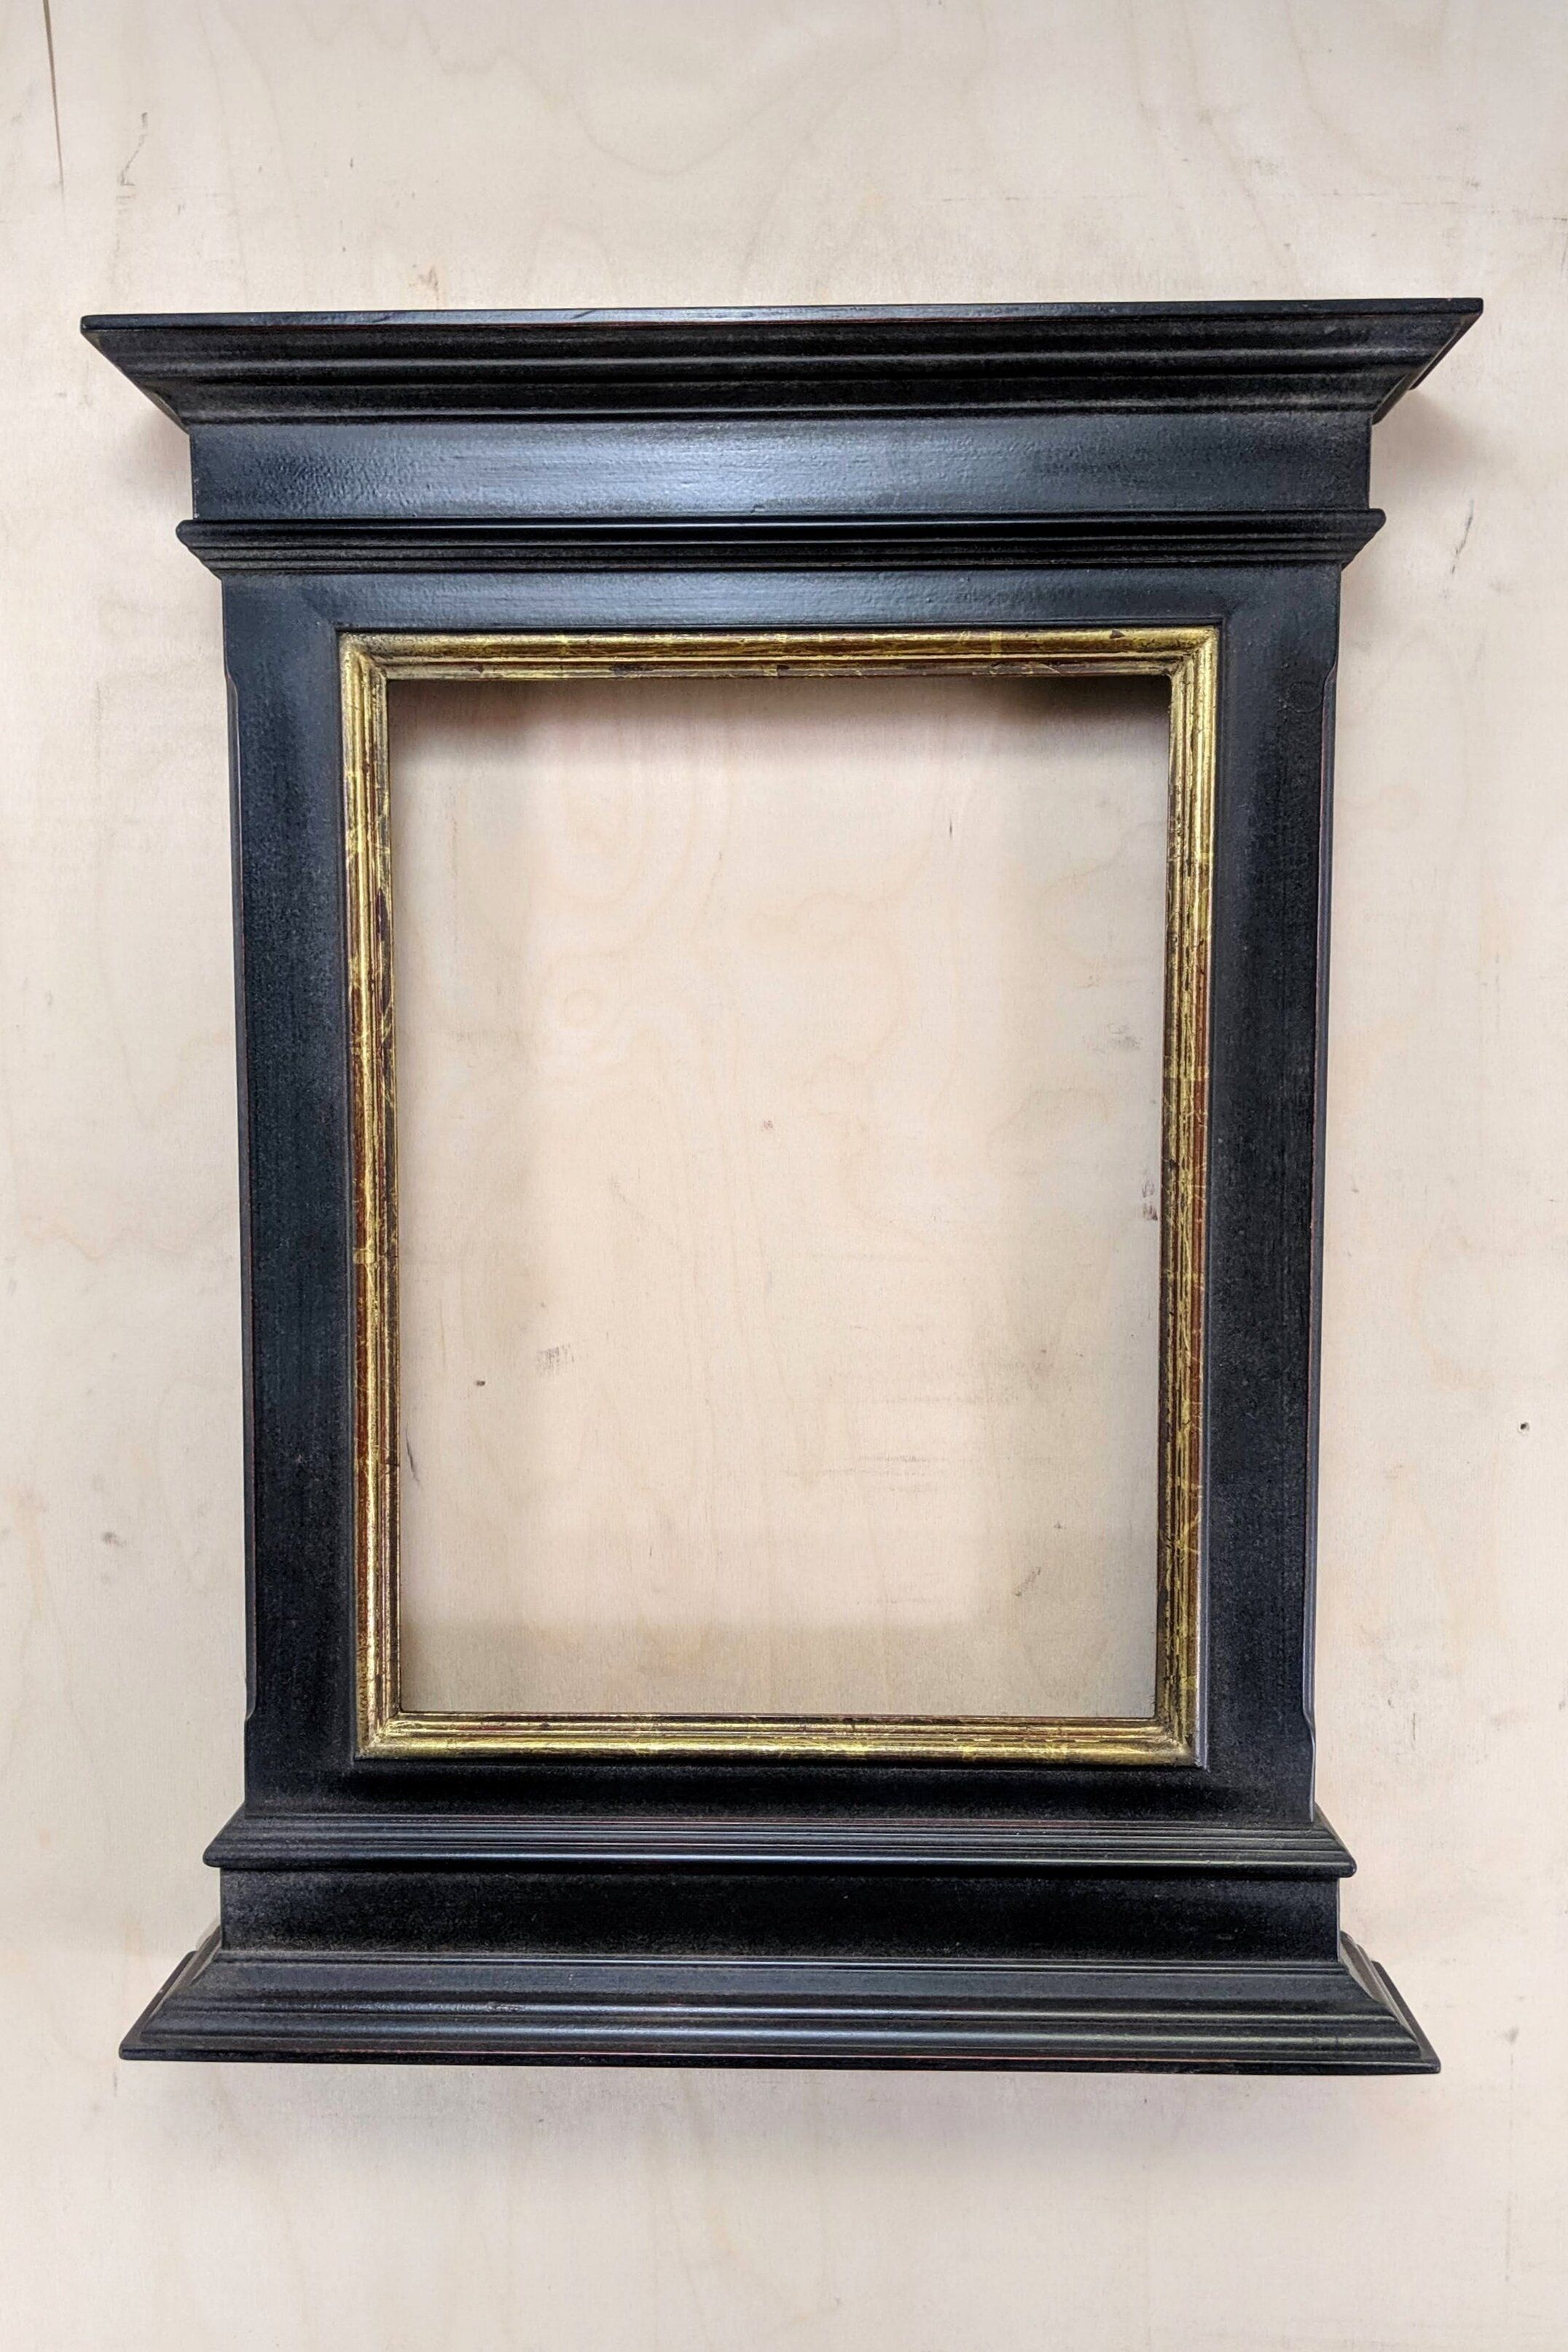 12x16 Tabernacle 22k Gold In Black In 2020 Tabernacle Frame Picture Frames